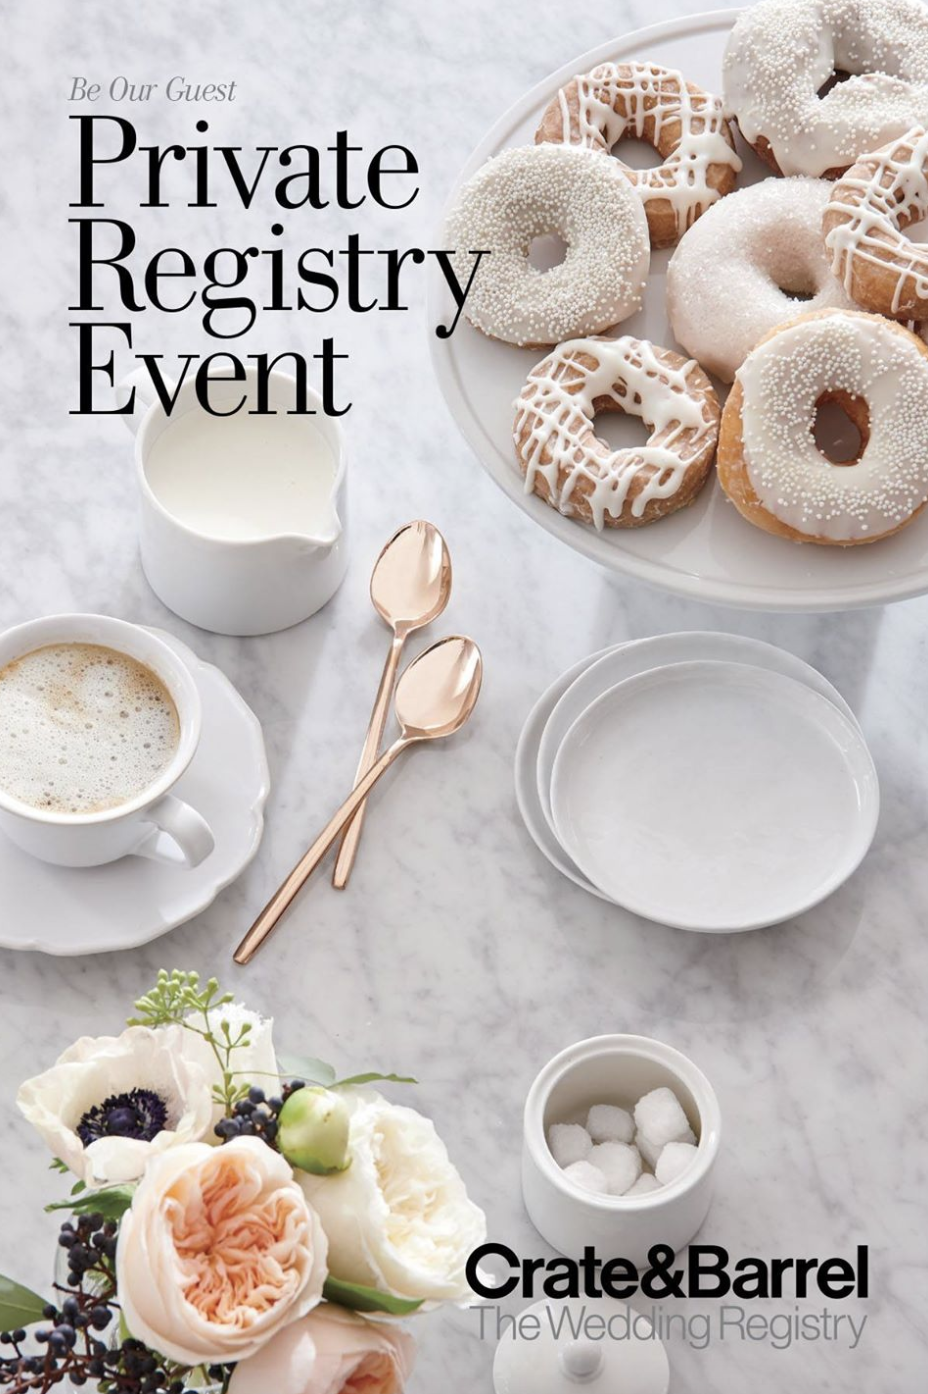 crate-and-barrel-private-registry-event.png